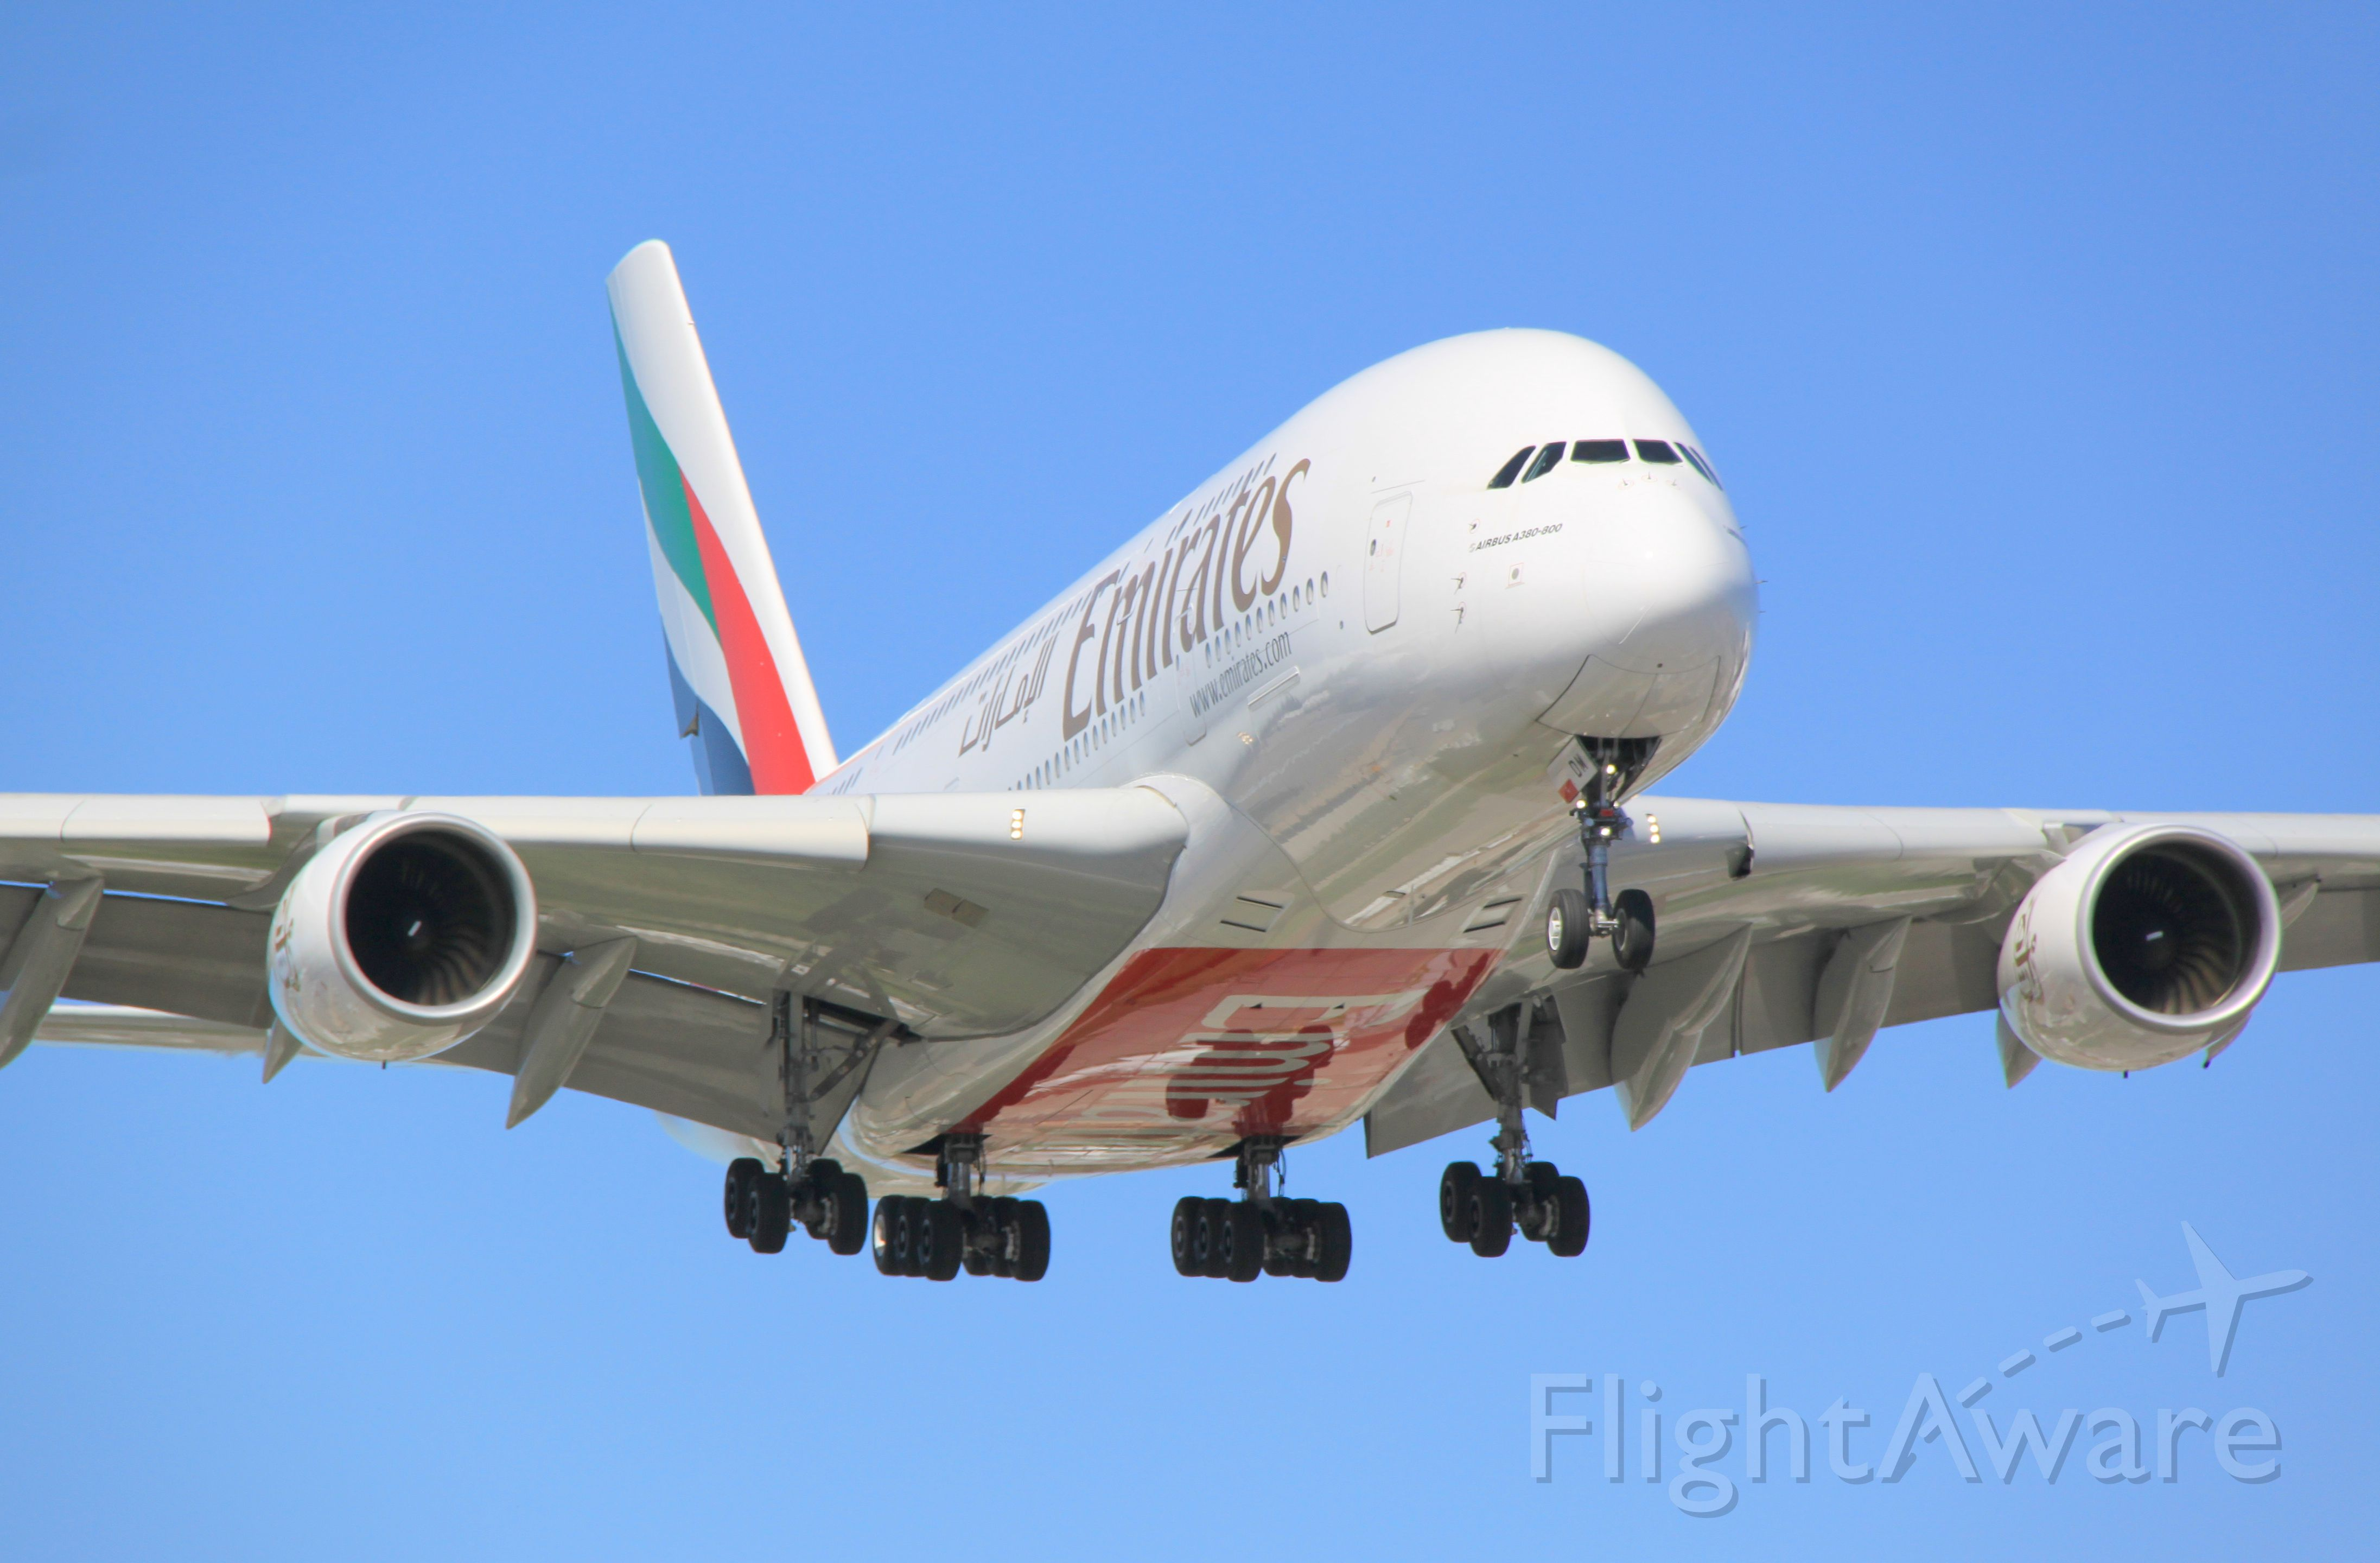 A6-EDM — - Seen arriving in Toronto Ontario Canada on 21 May 2012.